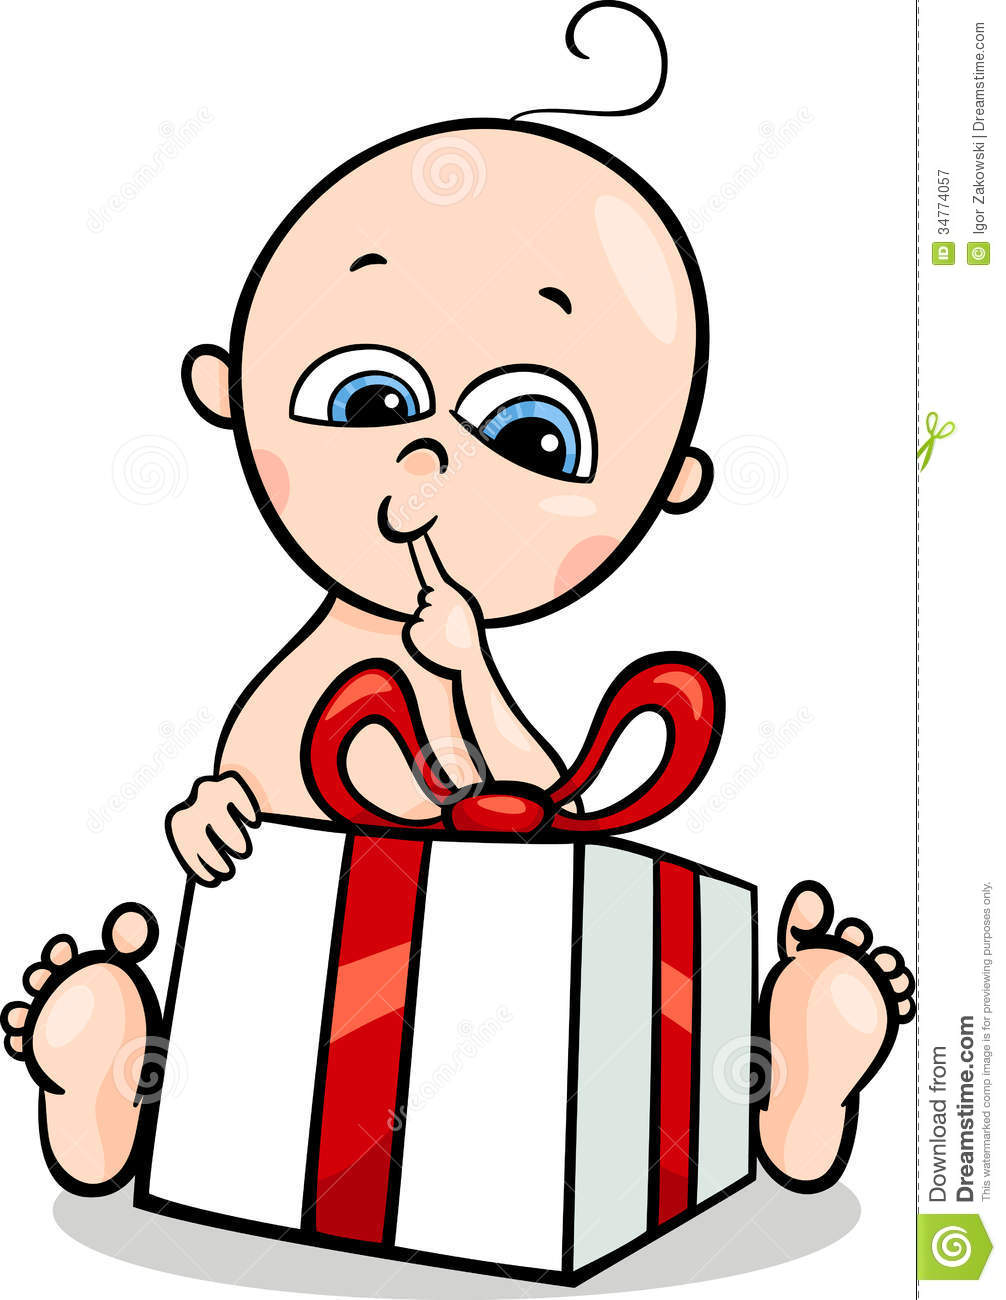 Baby Boy With Gift Cartoon Illustration Royalty Free Stock Photography ...